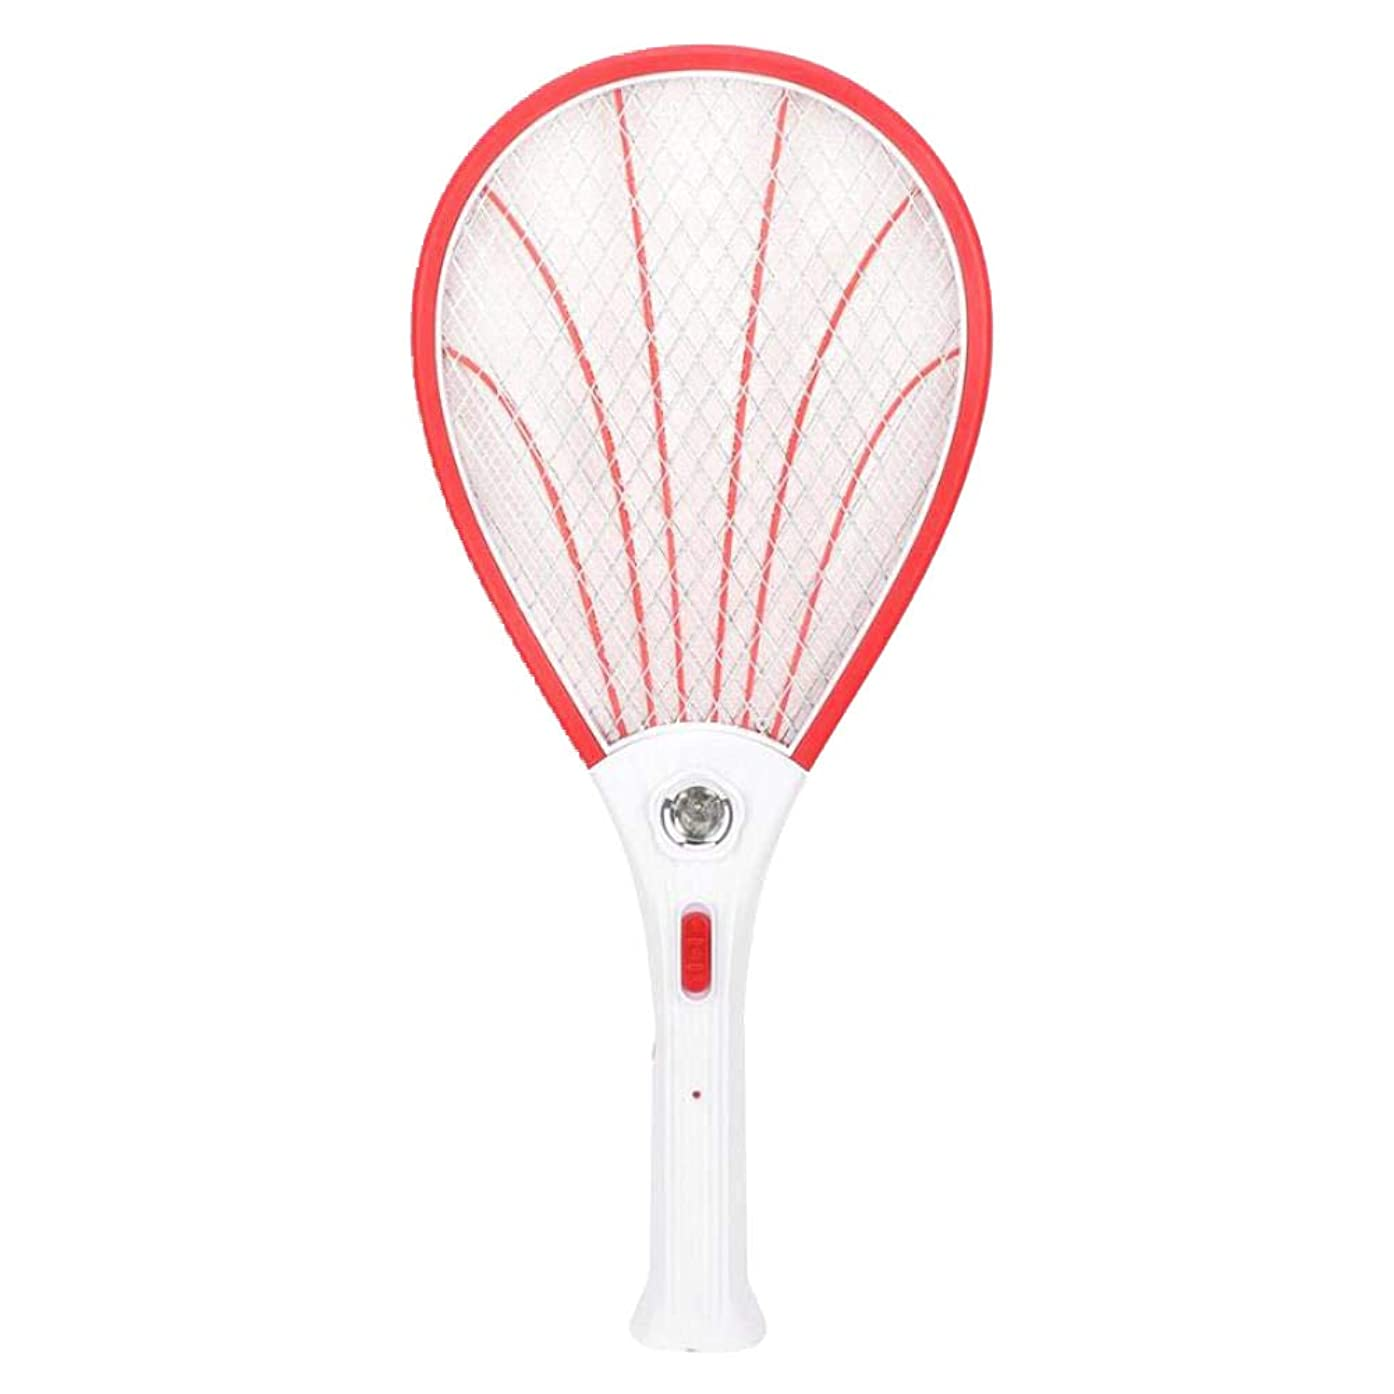 UNNNPA Bug Zapper Racket Hign Quality 2 in 1 Electric Rechargeable Mosquito Killer LED Lamp